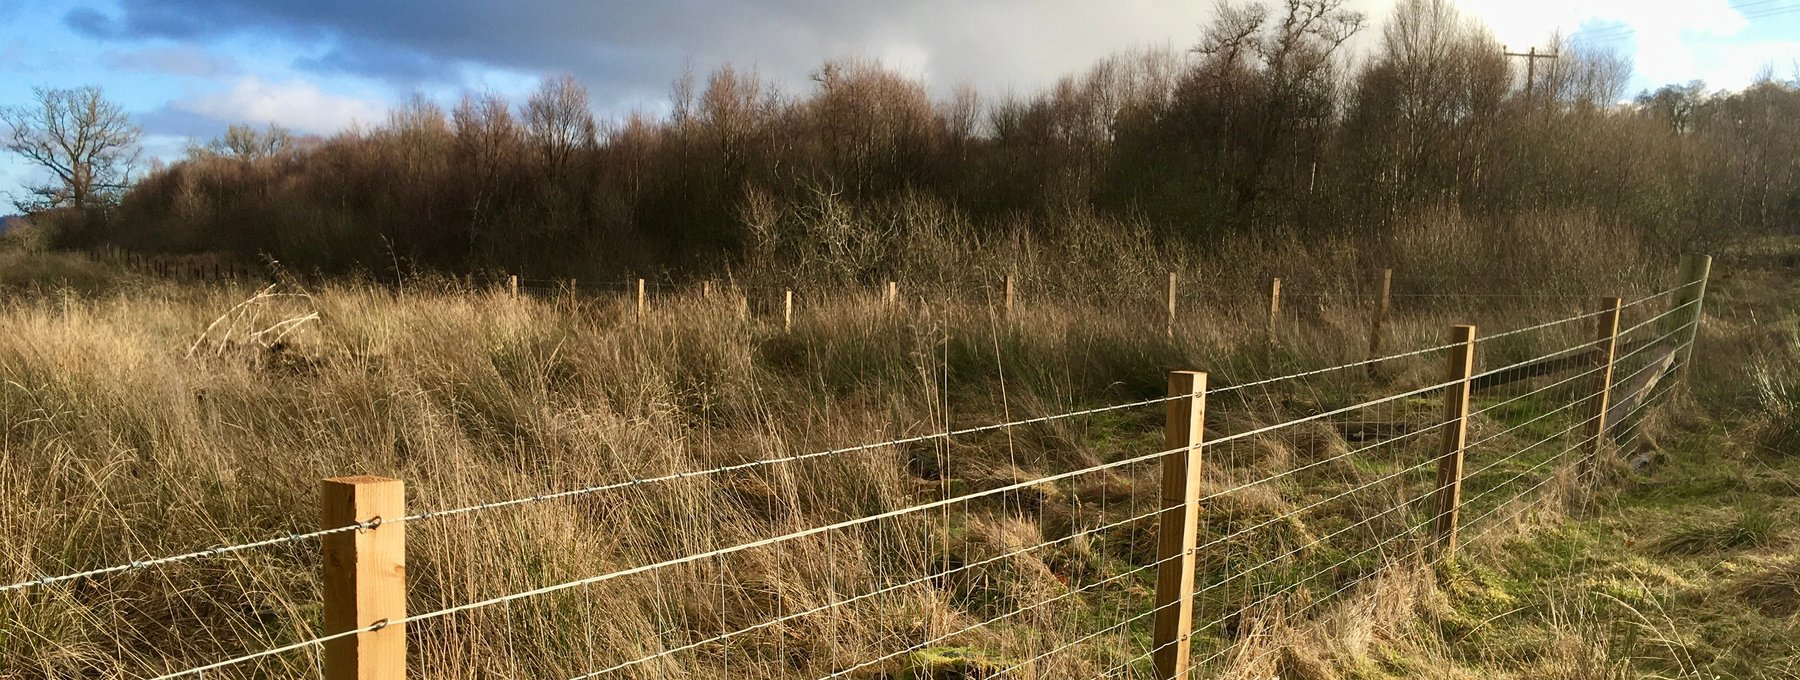 Murthly Sawmill erected fence - Our fencing products are used by 100s of farmers across Scotland. (© Murthly Estate)